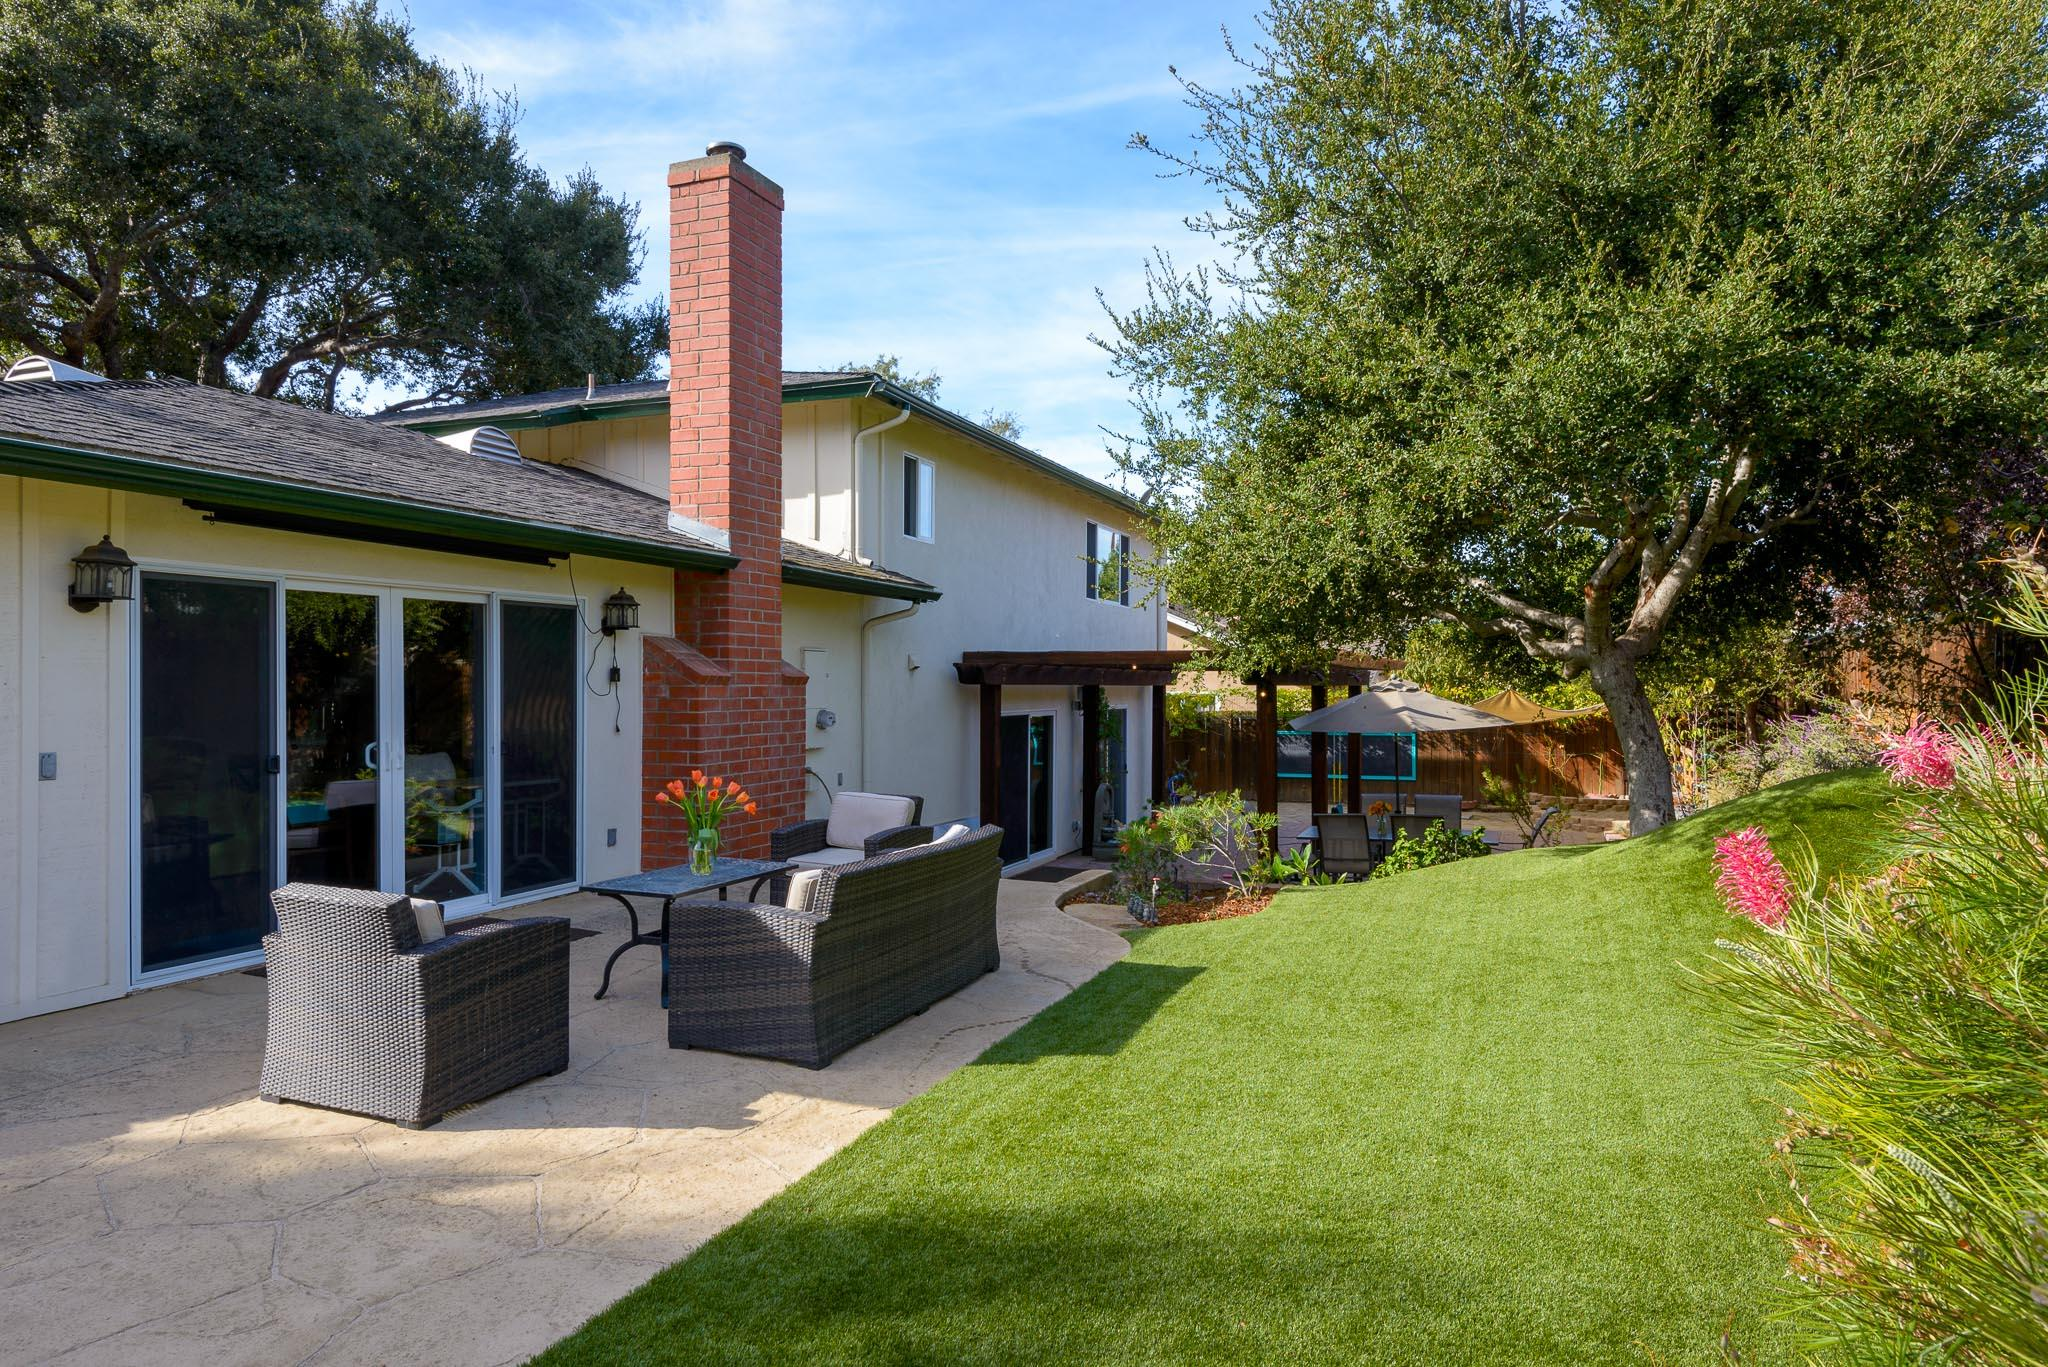 Property photo for 5504 Cathedral Oaks Rd Santa Barbara, California 93111 - 18-16